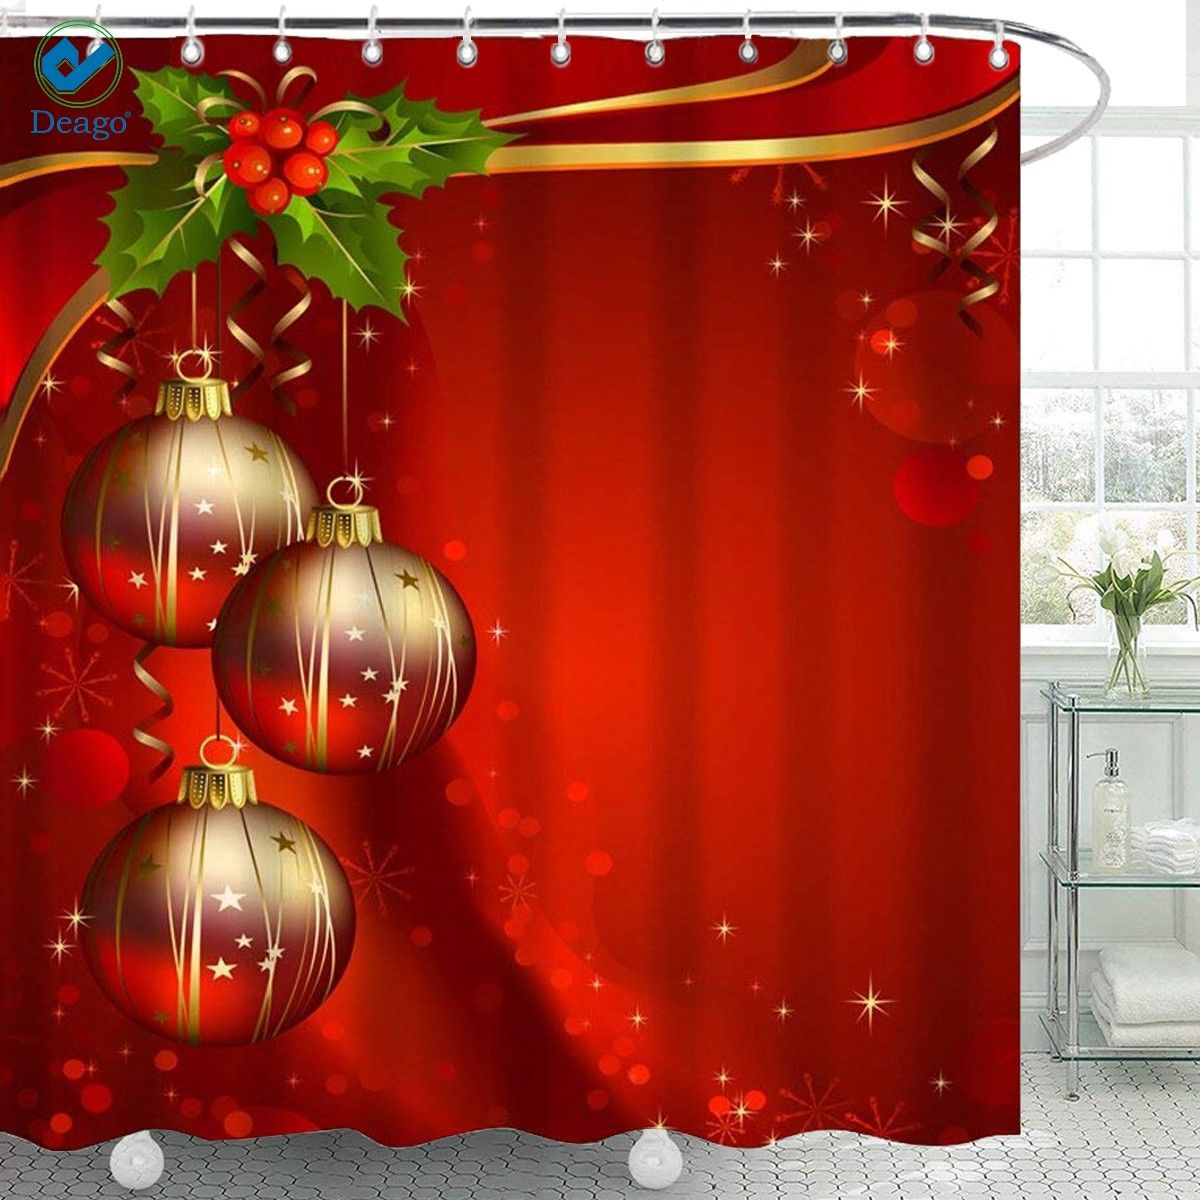 deago merry christmas shower curtain xmas ornaments waterproof funny bathroom curtains party decor with 12 hooks set 71 x71